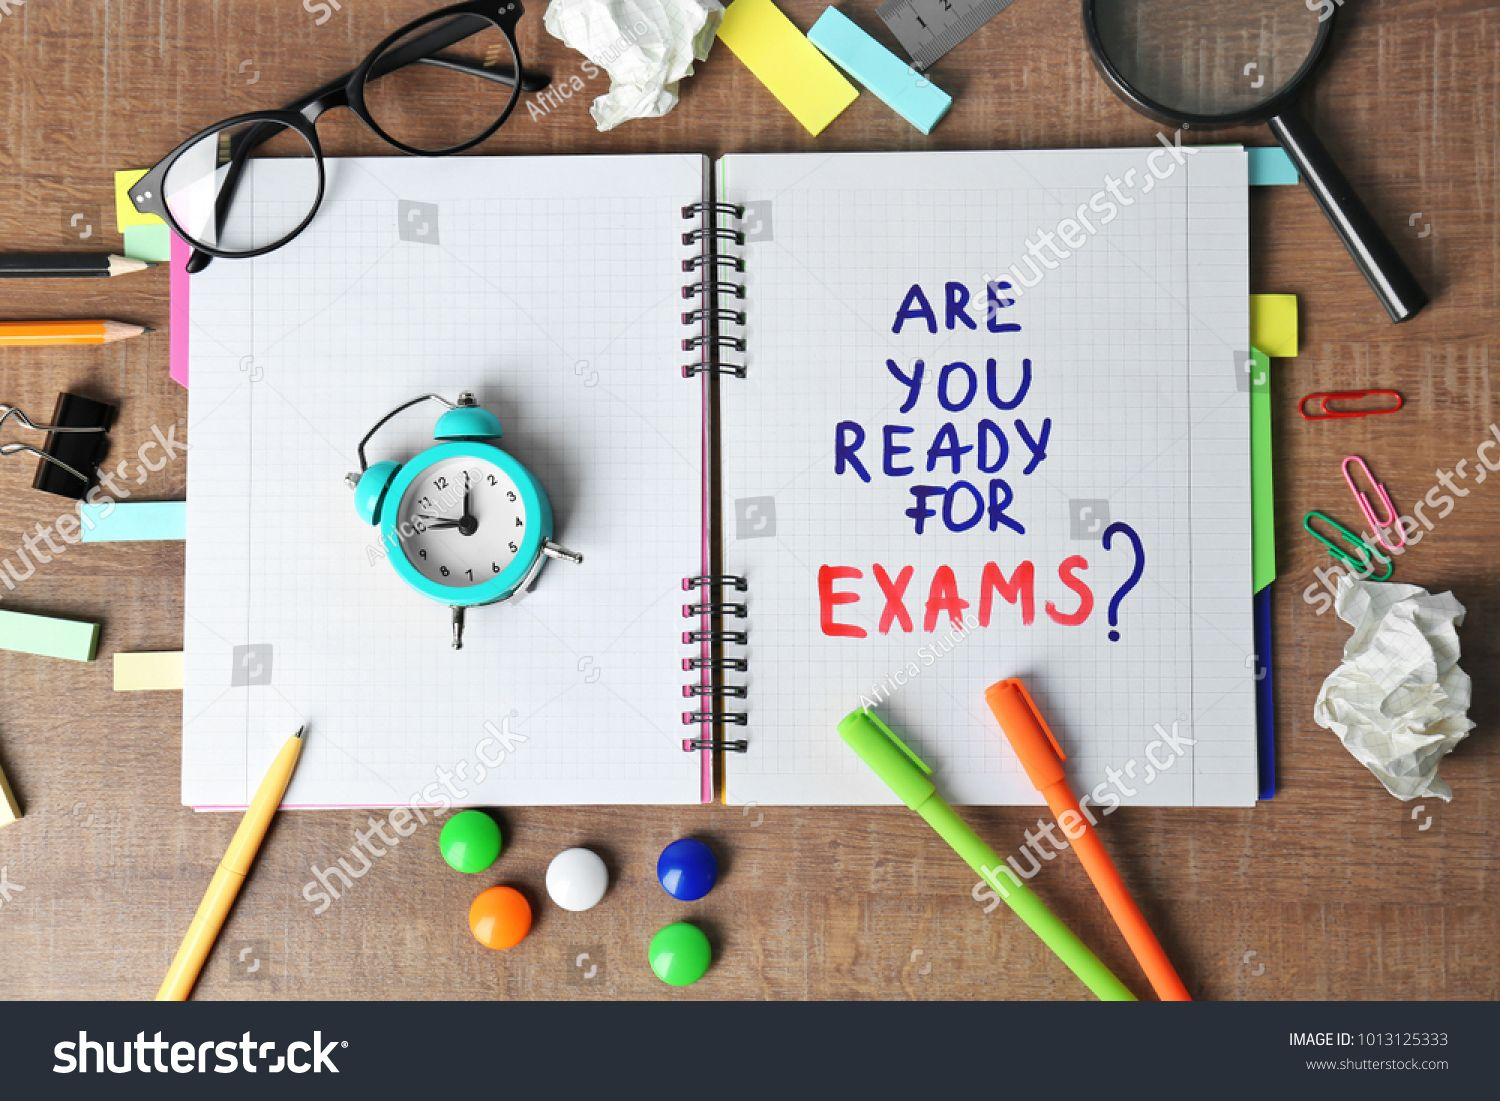 Notebook With Question Are You Ready For Exams And